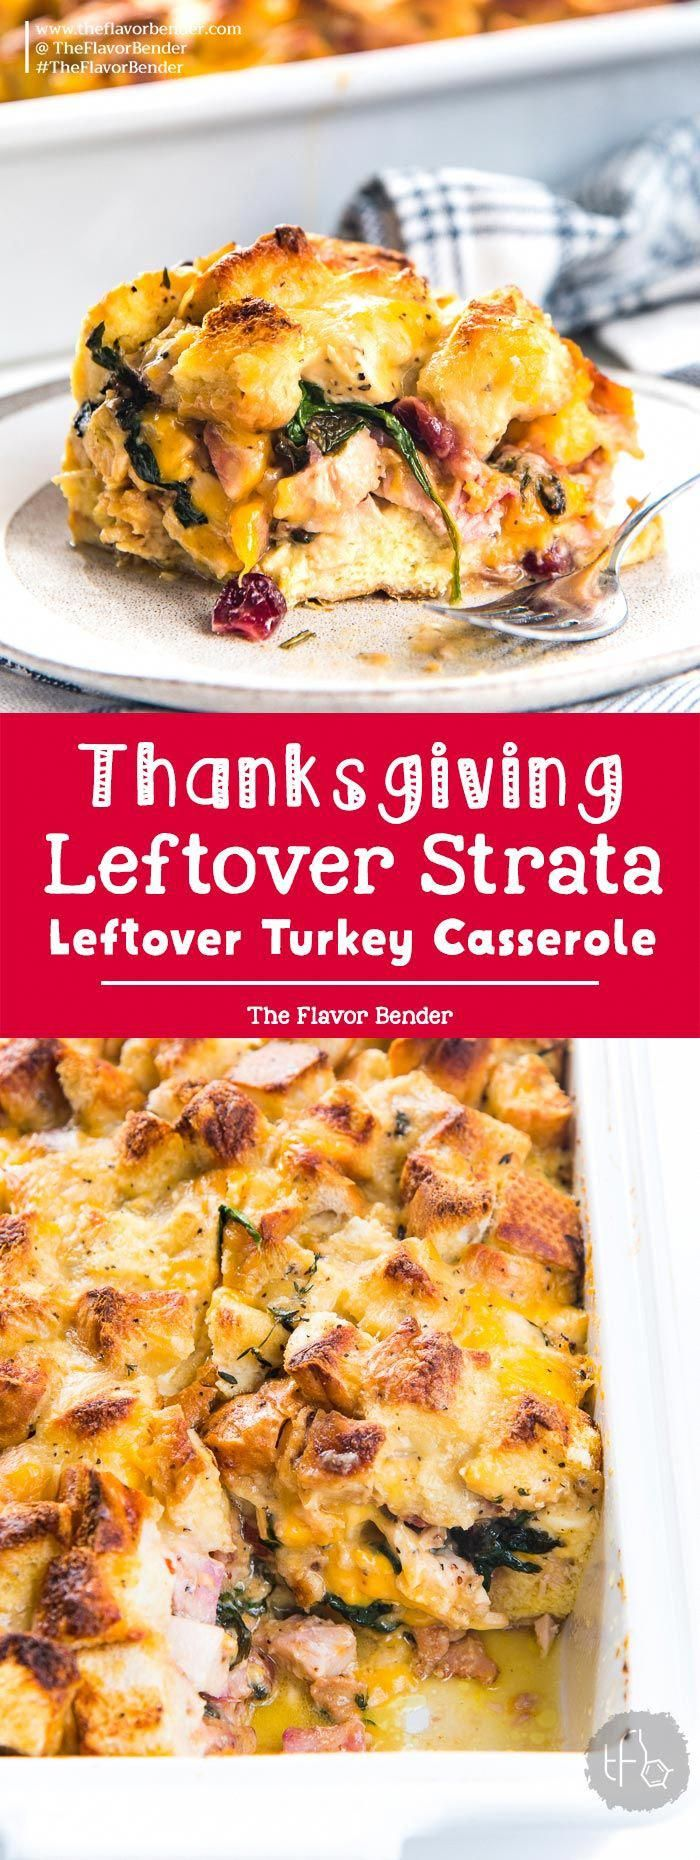 Thanksgiving Leftover Strata - Transform all your thanksgiving leftovers into this layered casserole with pockets of gooey cheese, cranberry sauce, turkey, french toast filling and gravy soaked croutons on top! #ThanksgivingLeftoverCasserole #ThanksgivingBrunch #HolidayBrunchRecipes #TurkeyCasserole #SavoryBreadPudding via @TheFlavorBender #thanksgivingbreakfast